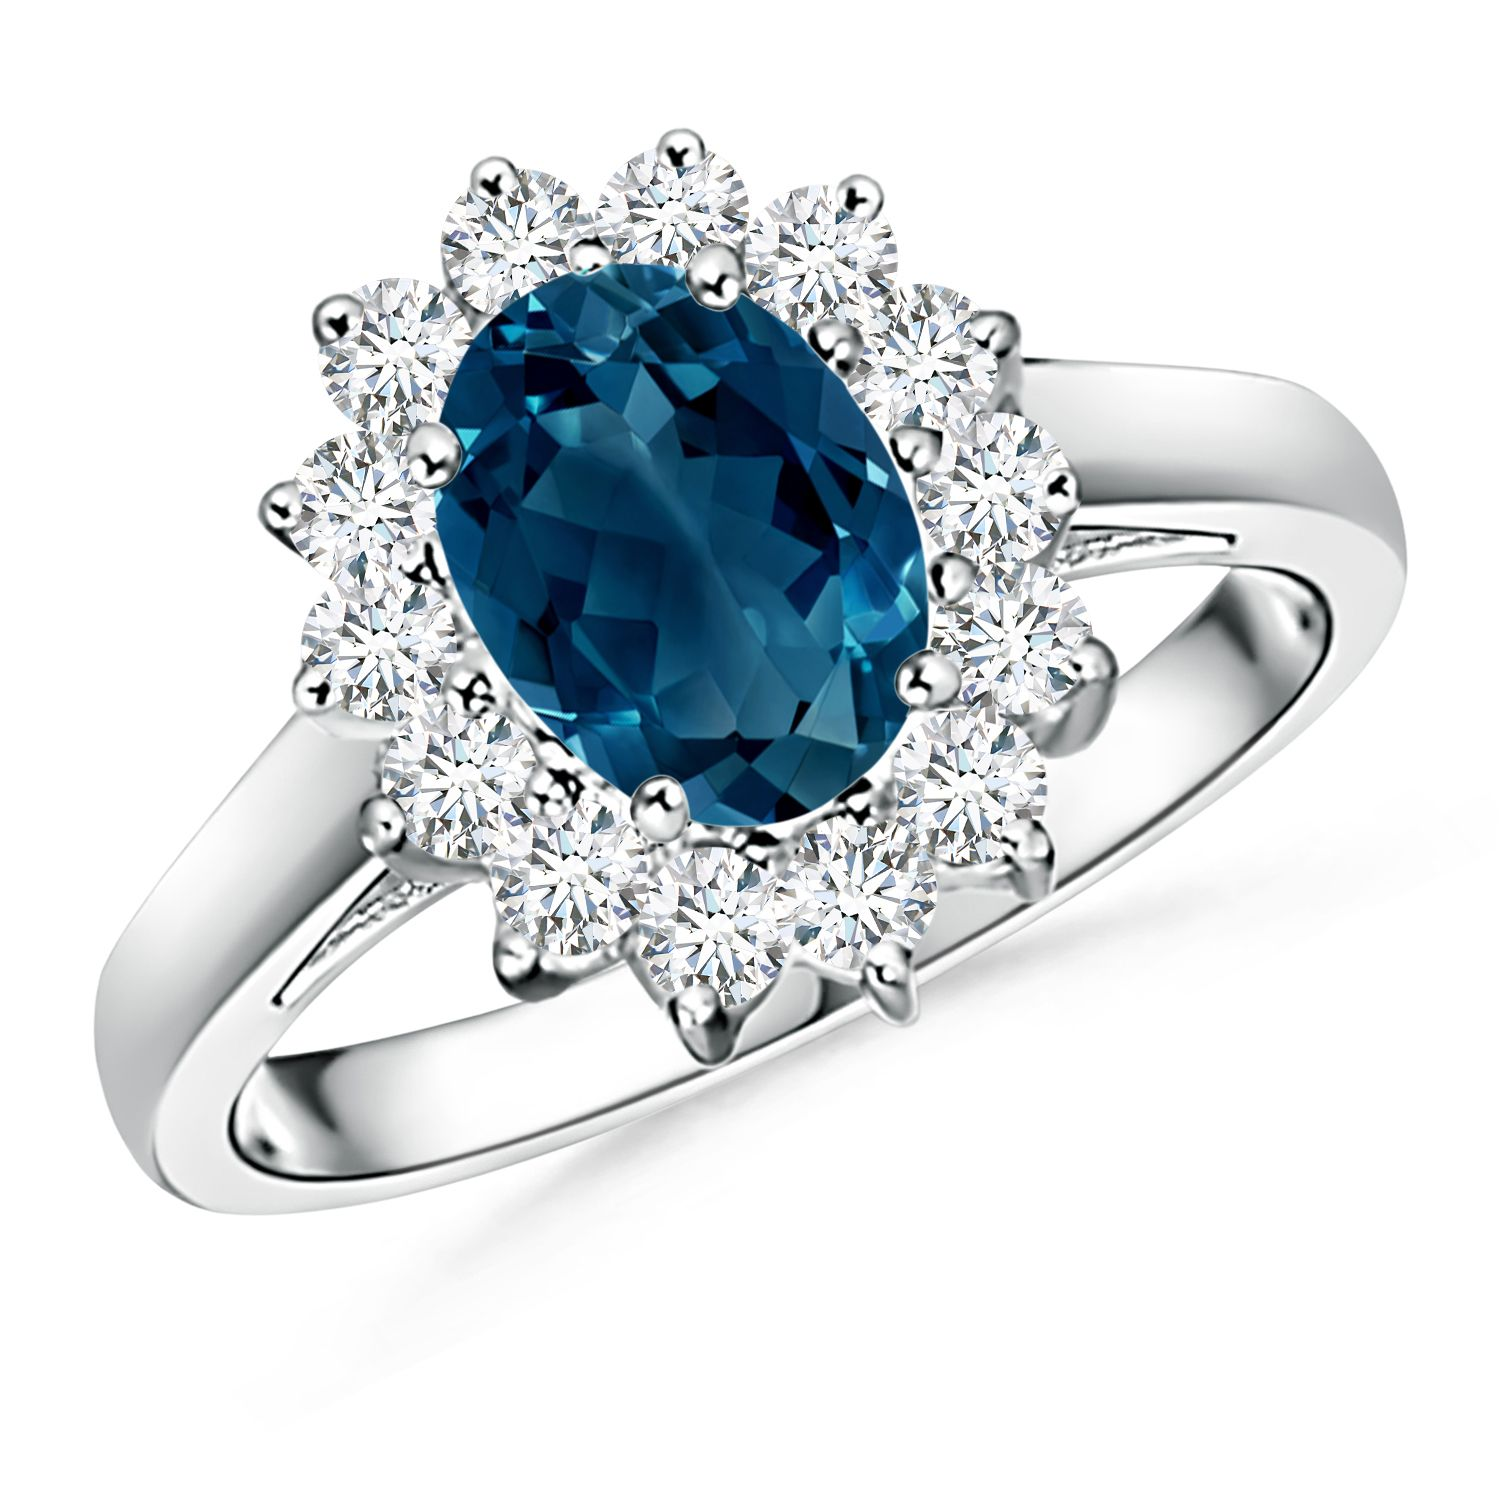 Angara Vintage London Blue Topaz Ring in Platinum xAZBHNisdA